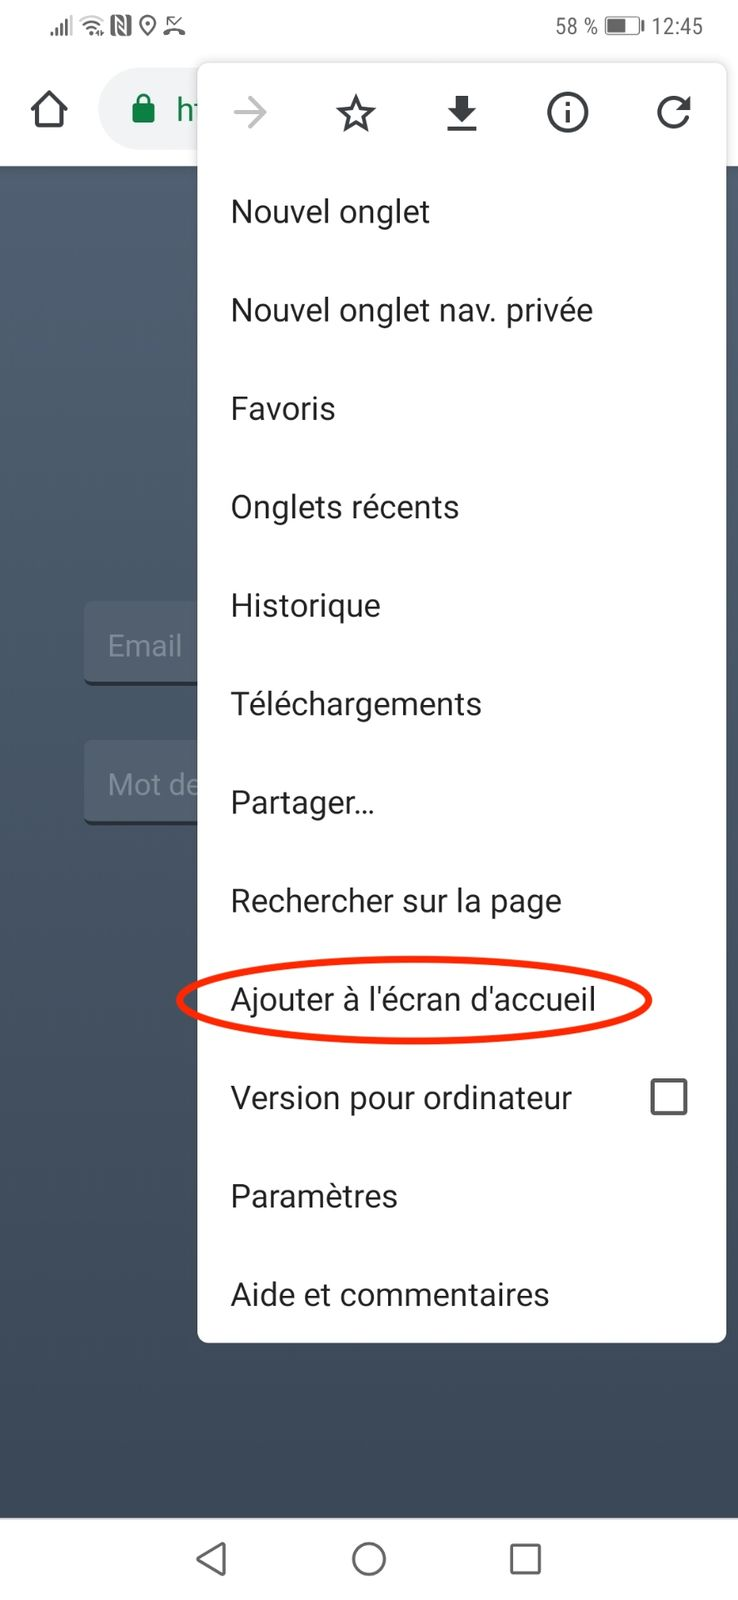 Installer PapaGère depuis le menu de Chrome